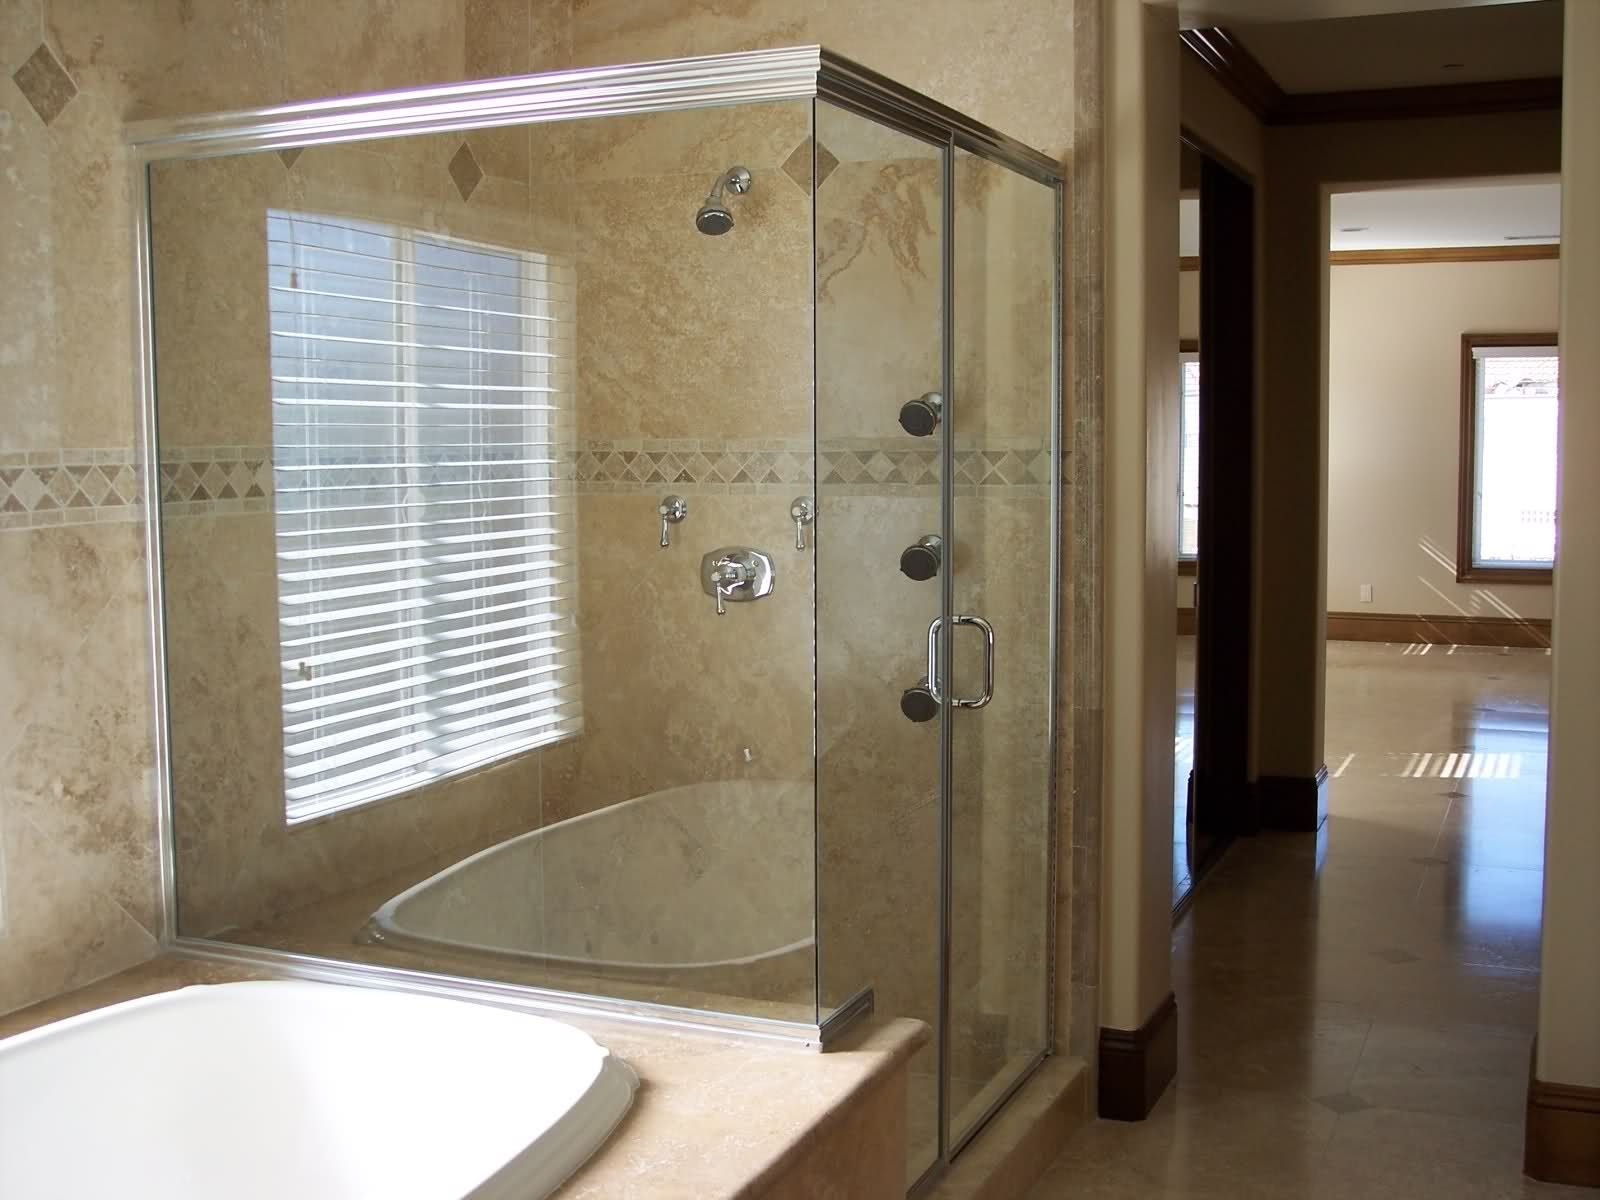 Example of framless shower door against tub | For the Home ...